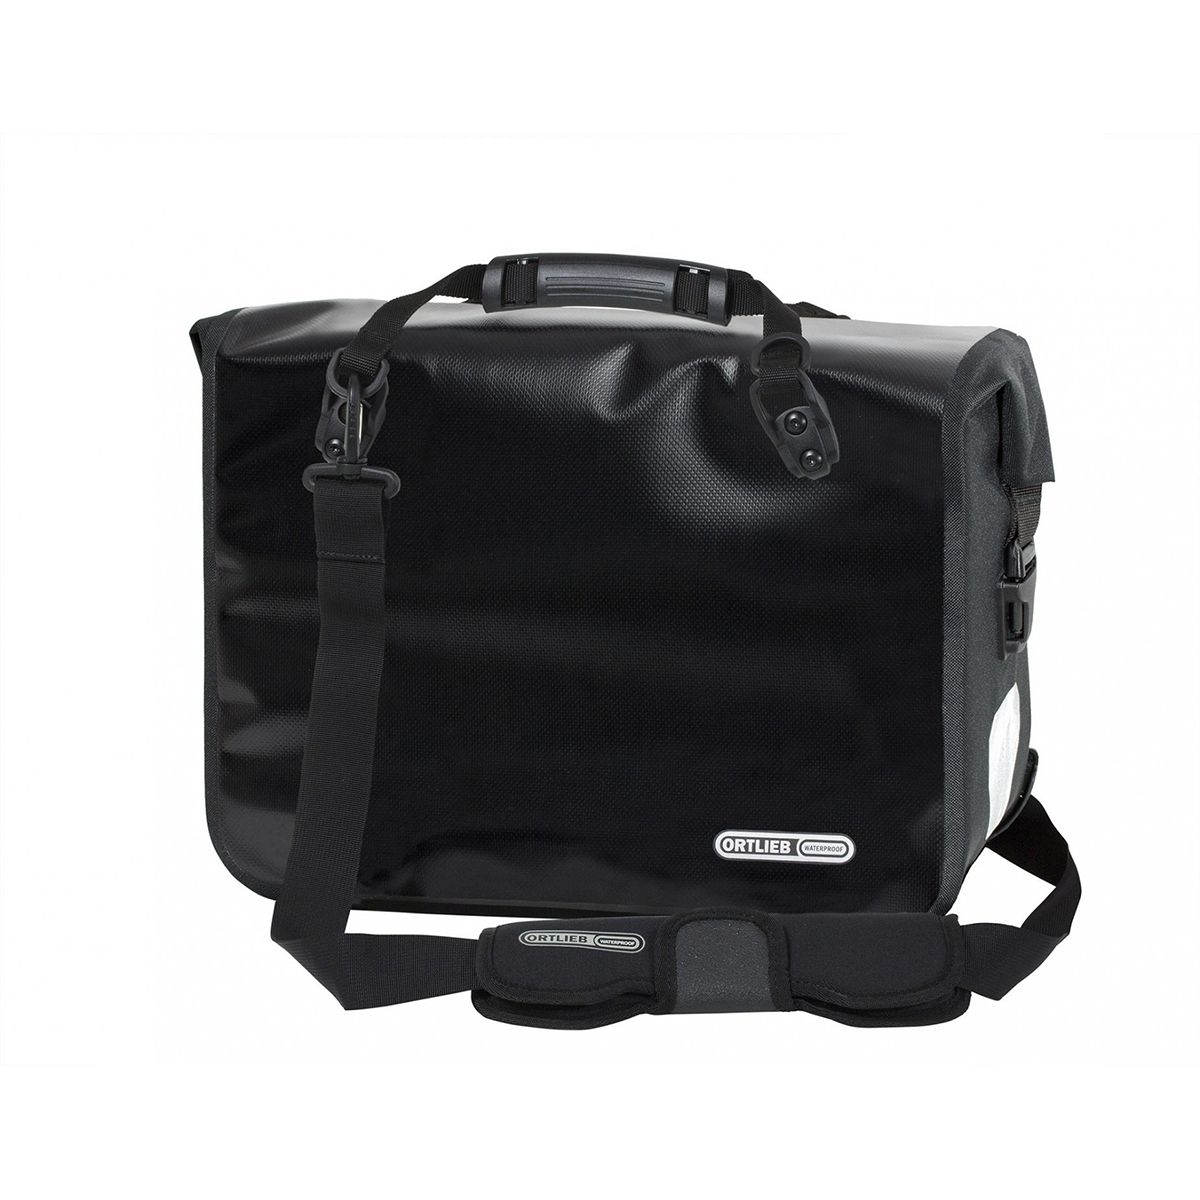 Ortlieb Ql3 Office Pannier Bag 1 KT5uclF1J3